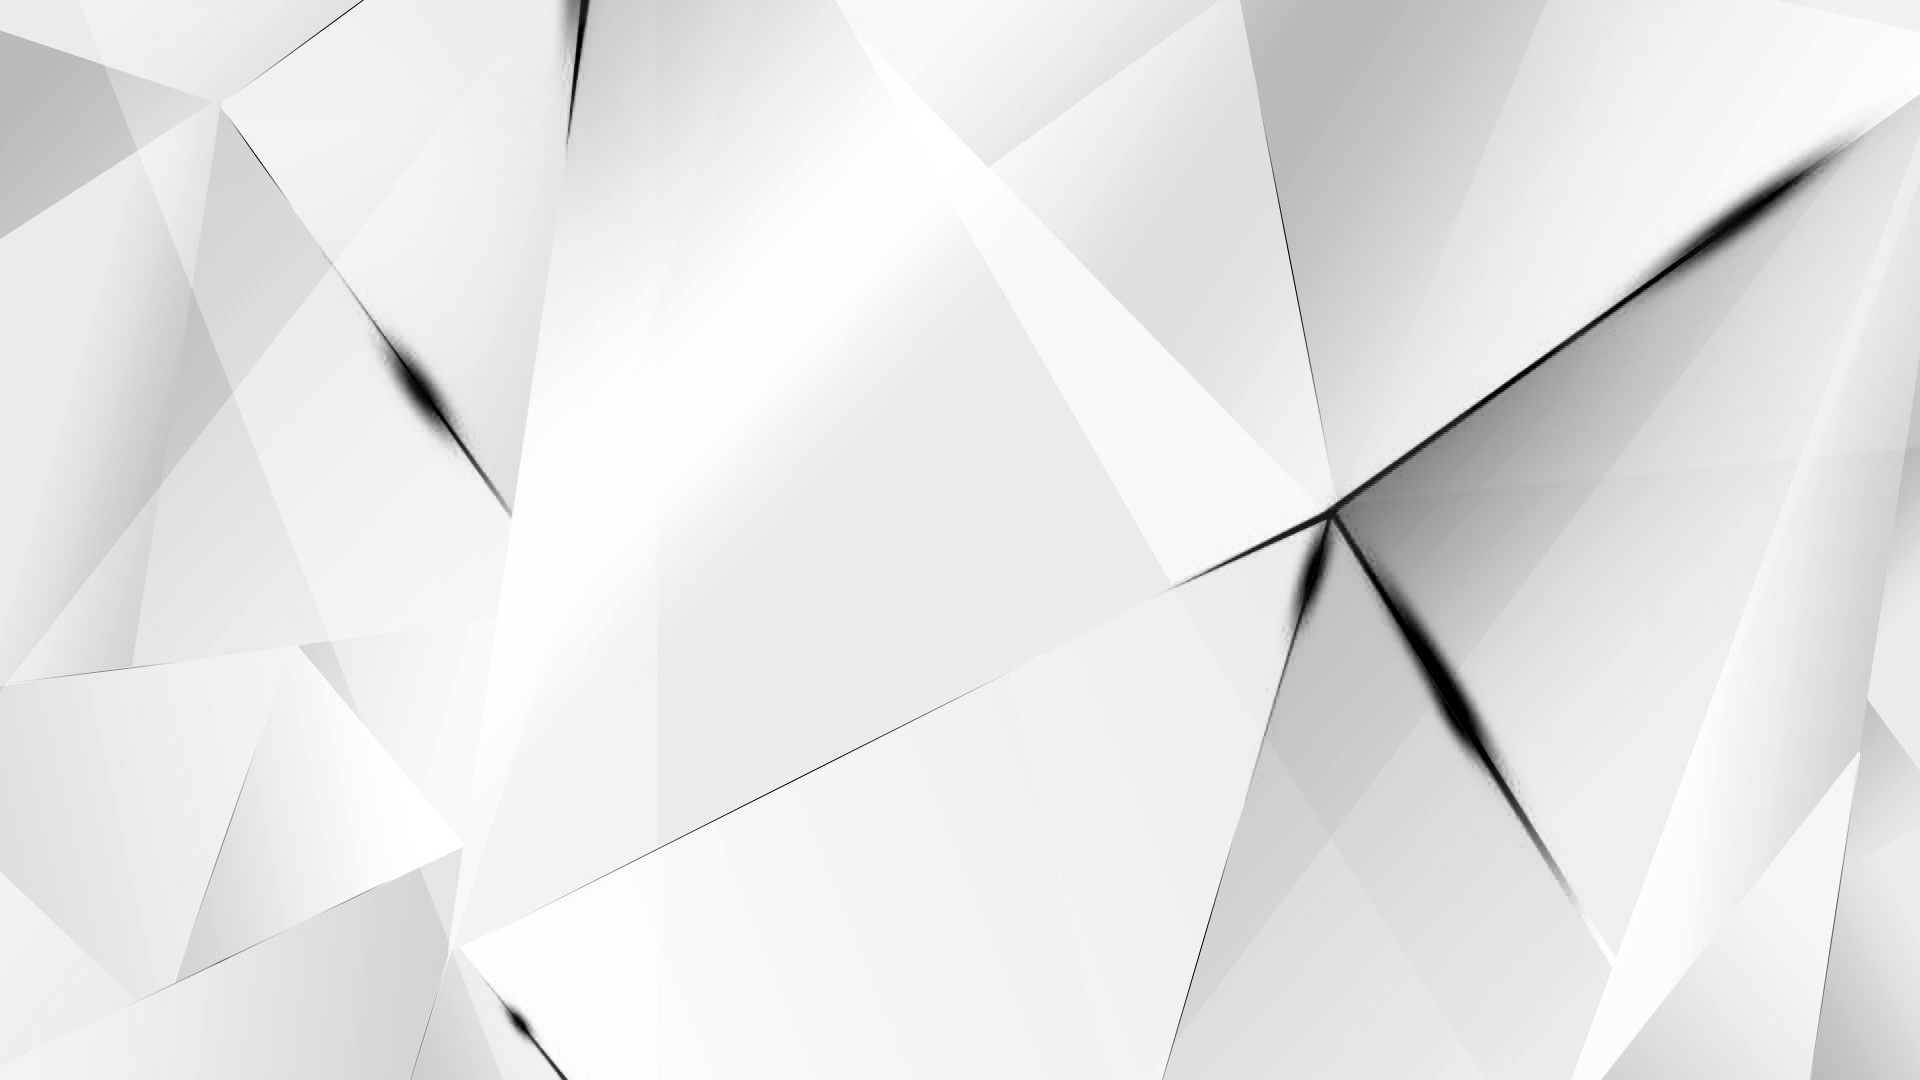 Wallpapers black abstract polygons white bg by kaminohunter on wallpapers black abstract polygons white bg by kaminohunter voltagebd Gallery